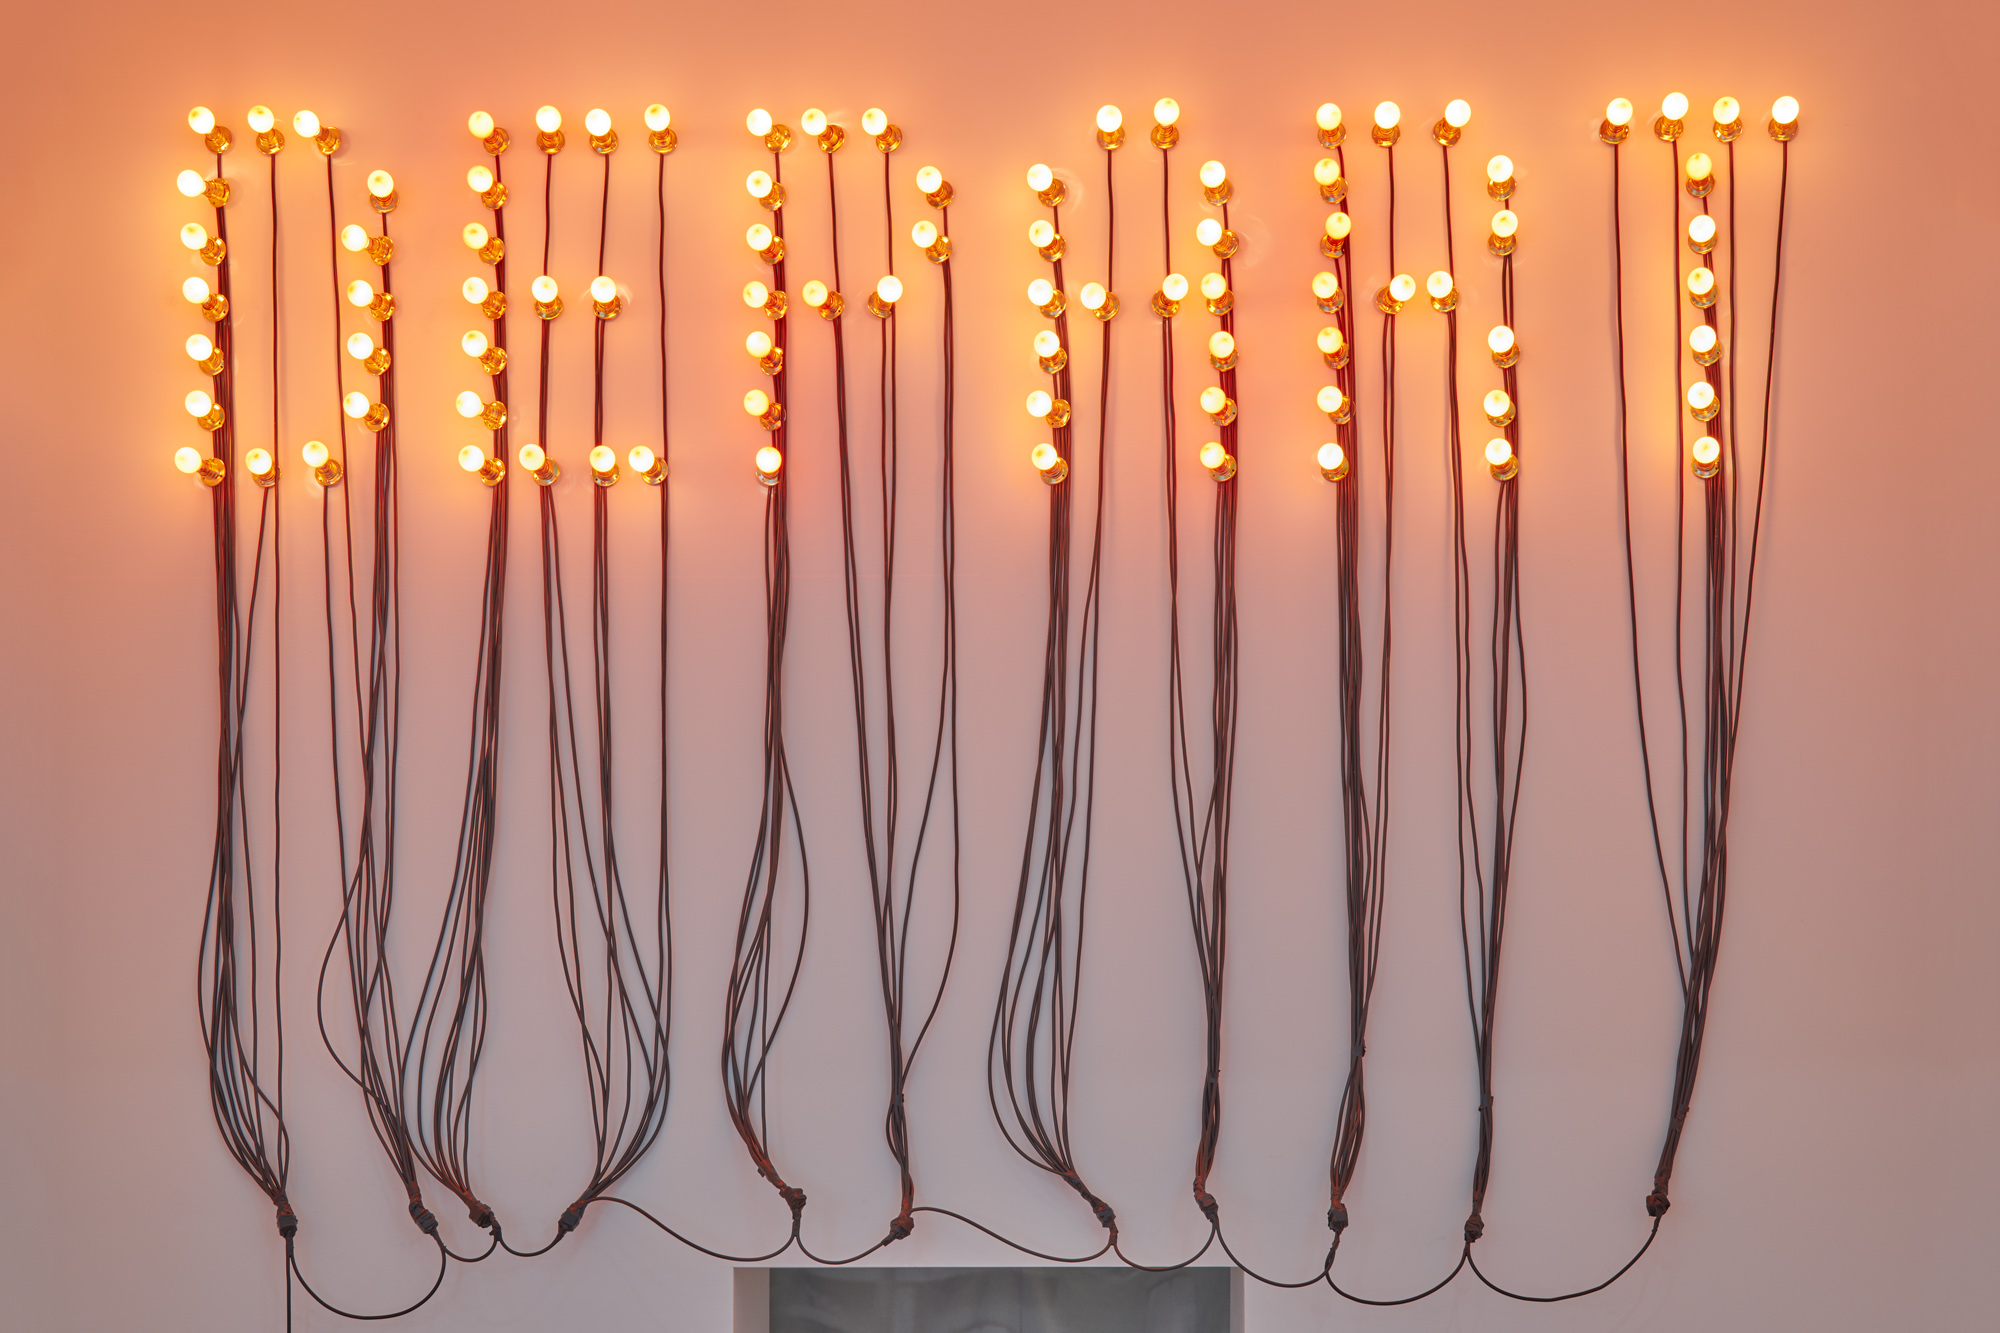 Départ (Departure), 2015 86 red light bulbs, electric wire